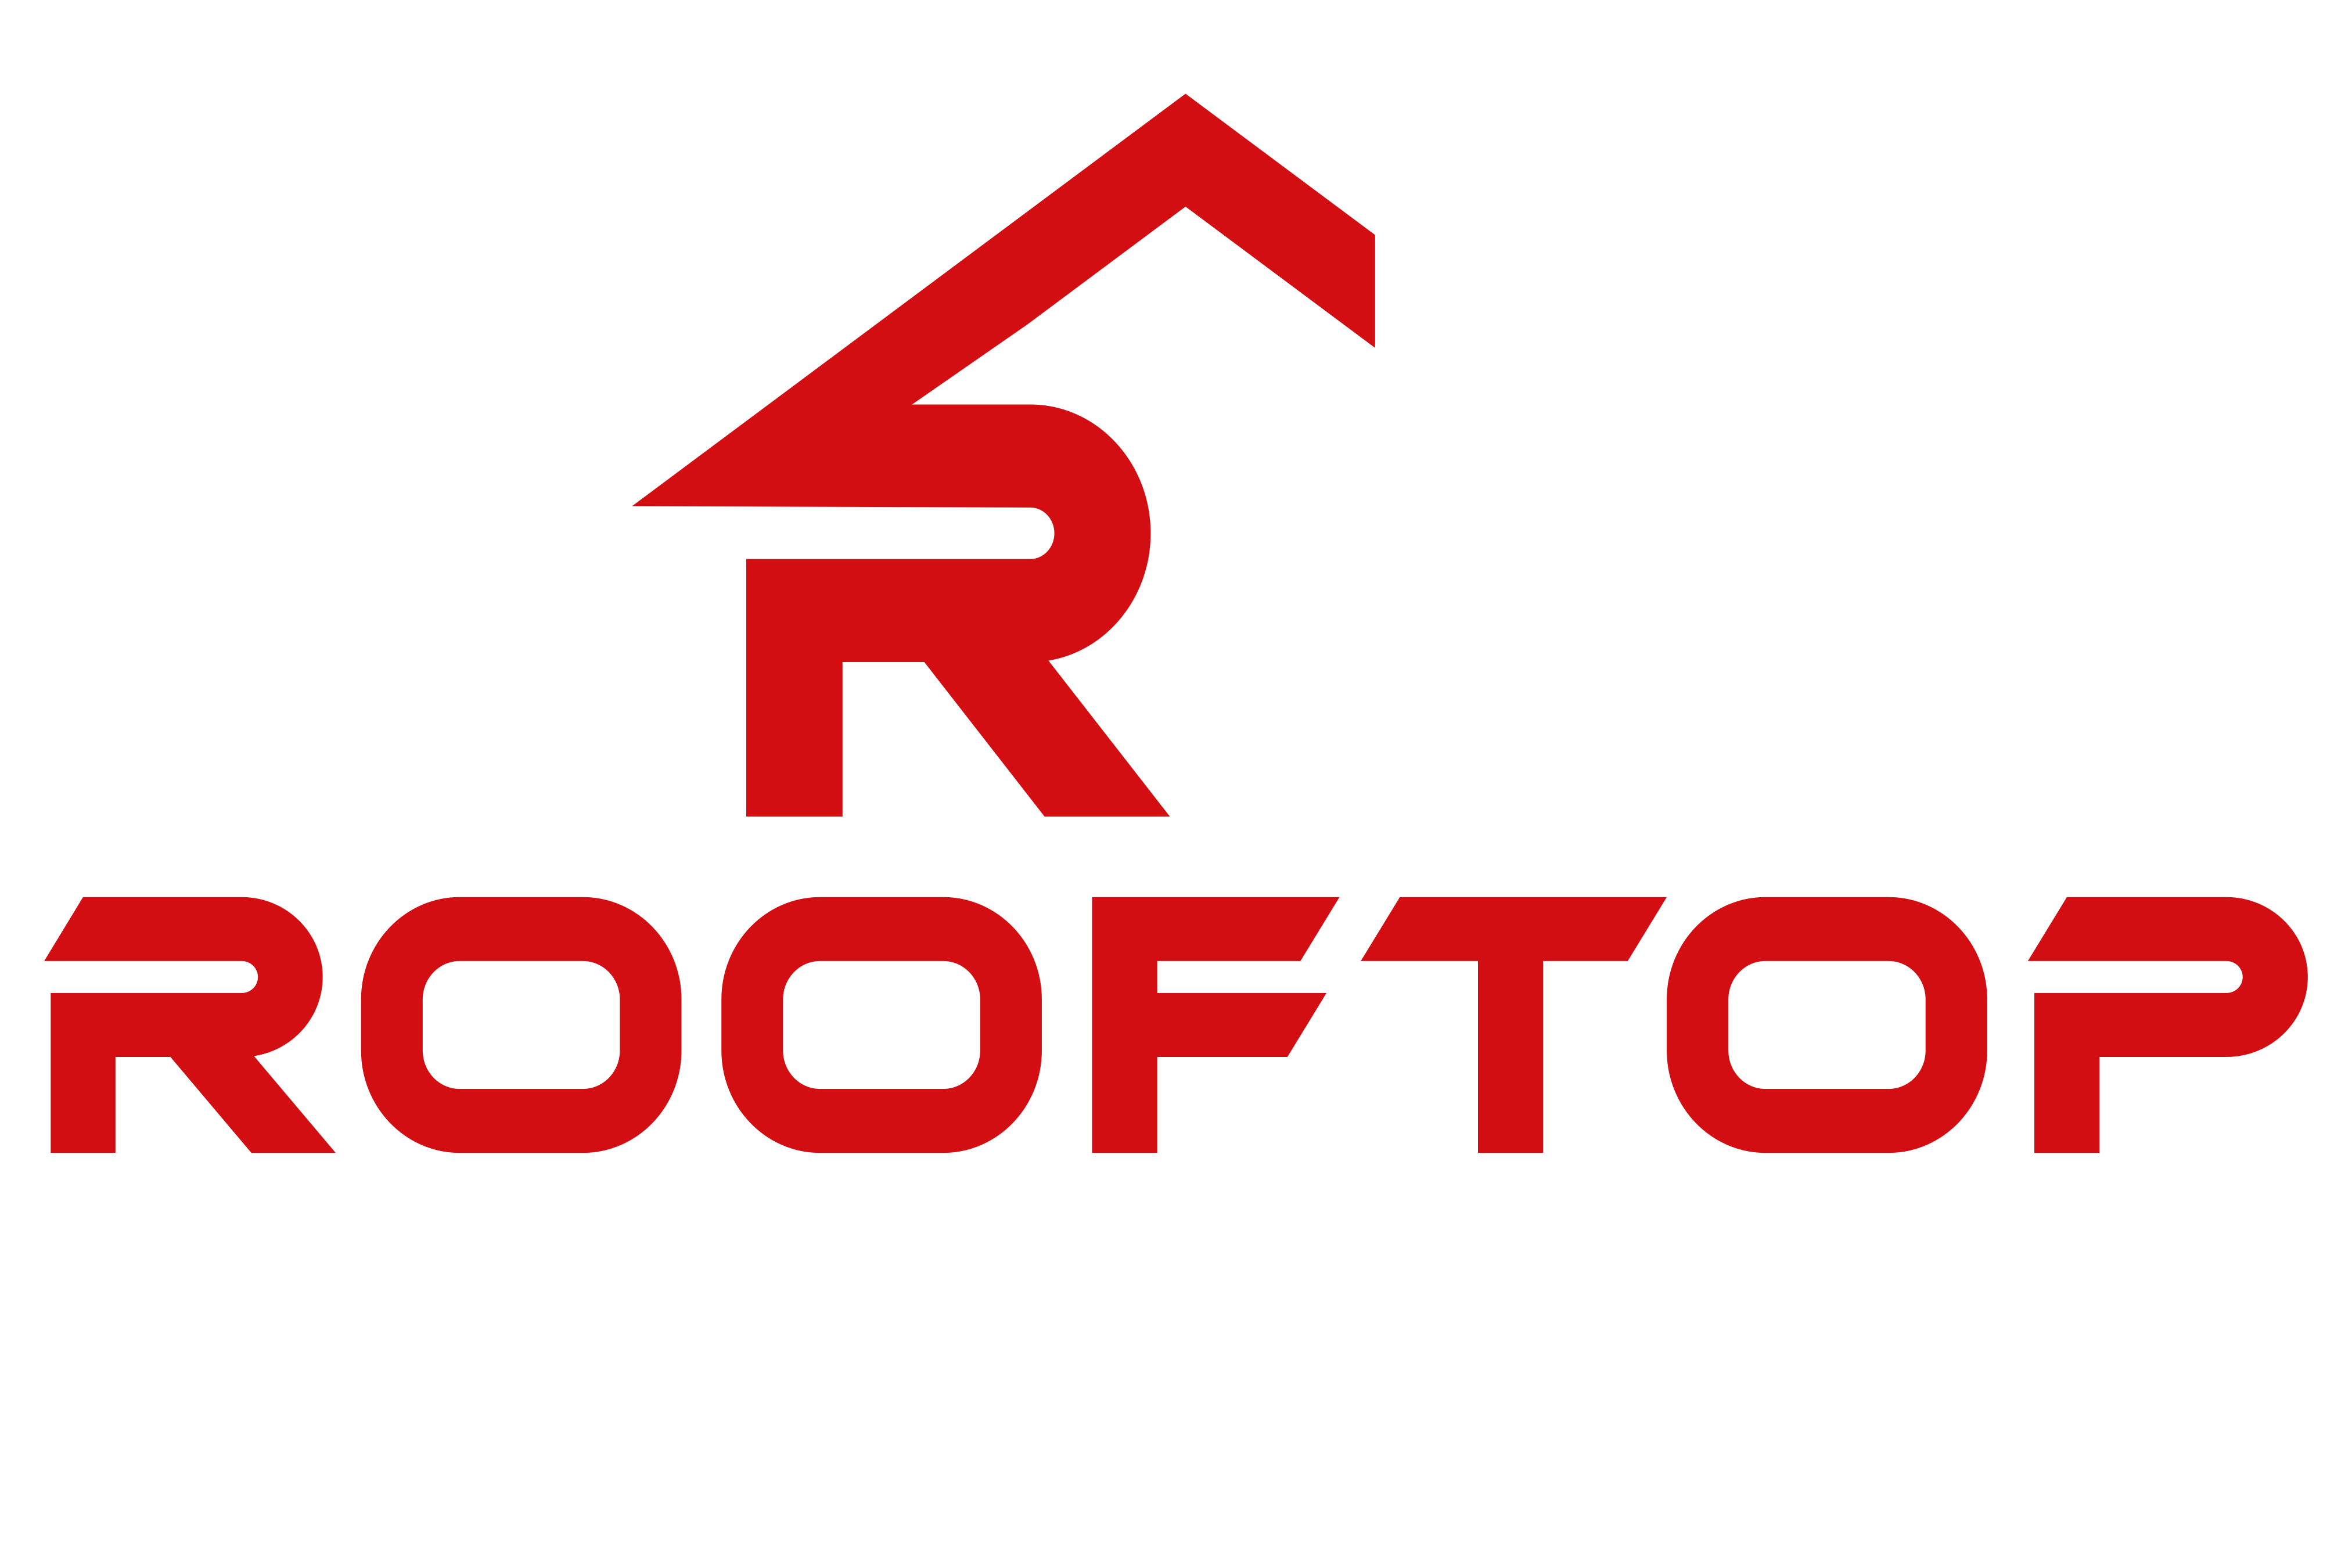 Rooftop Solutions